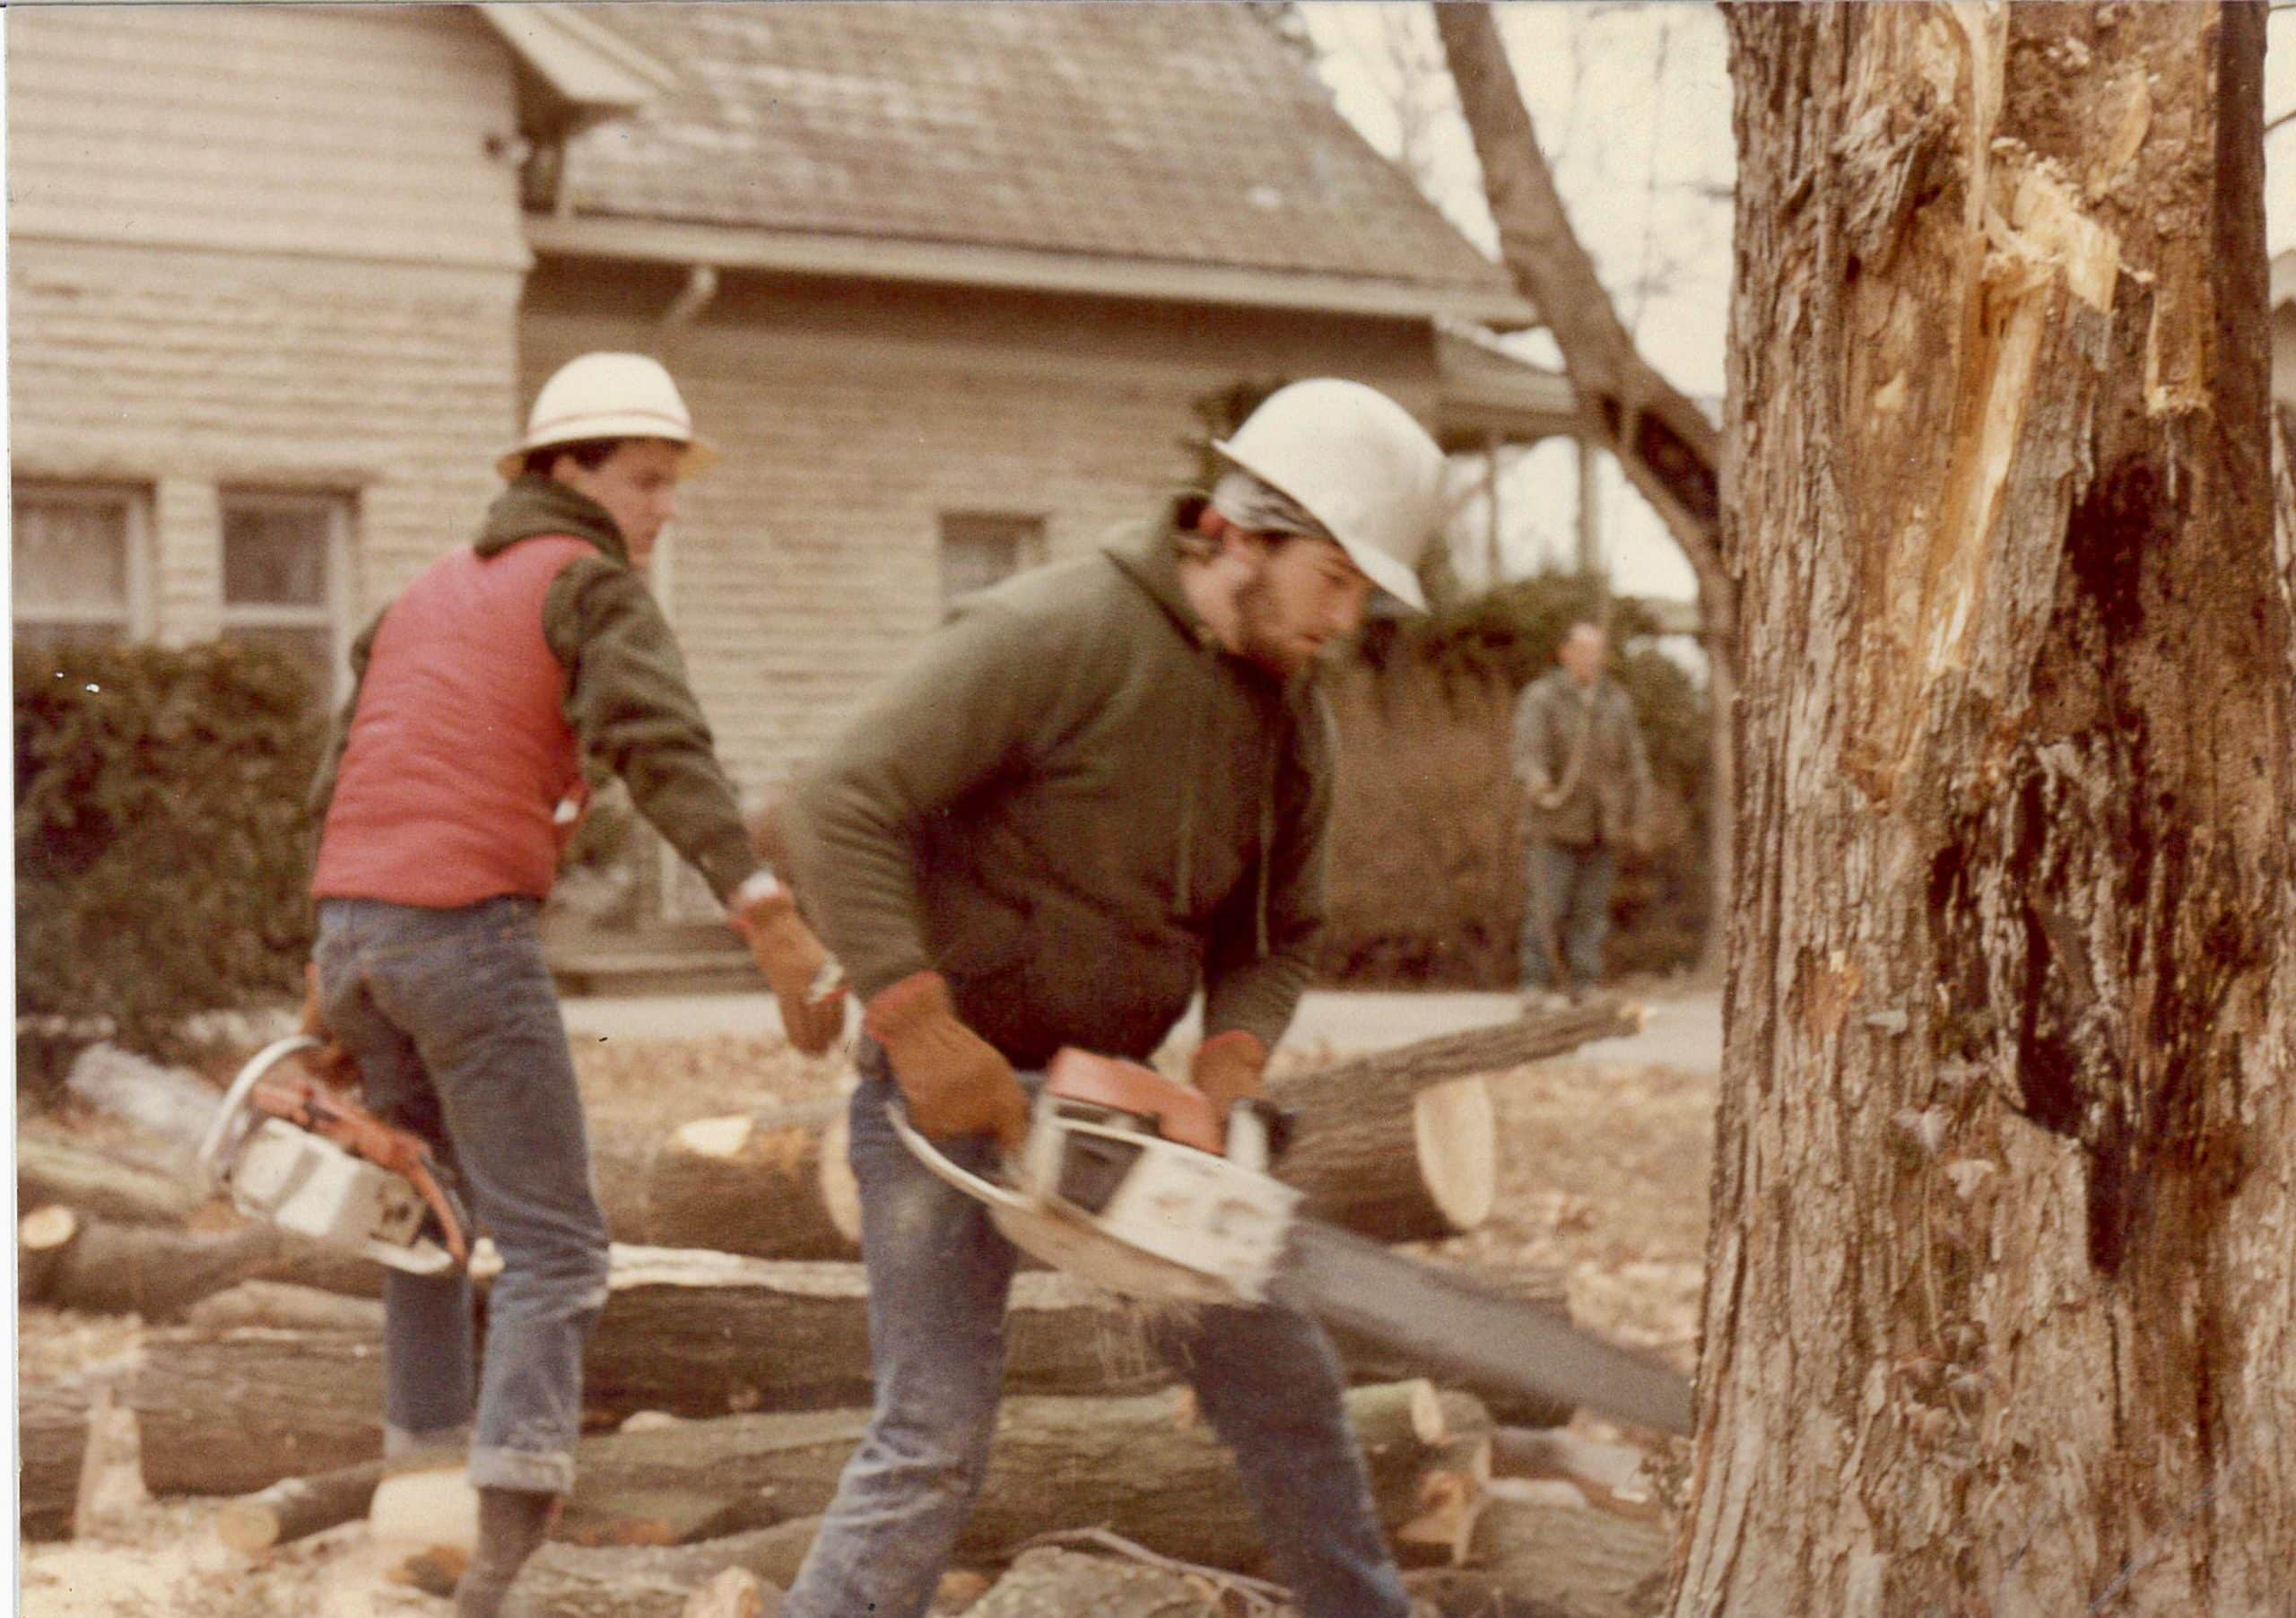 tee ray cutting tree with chainsaw